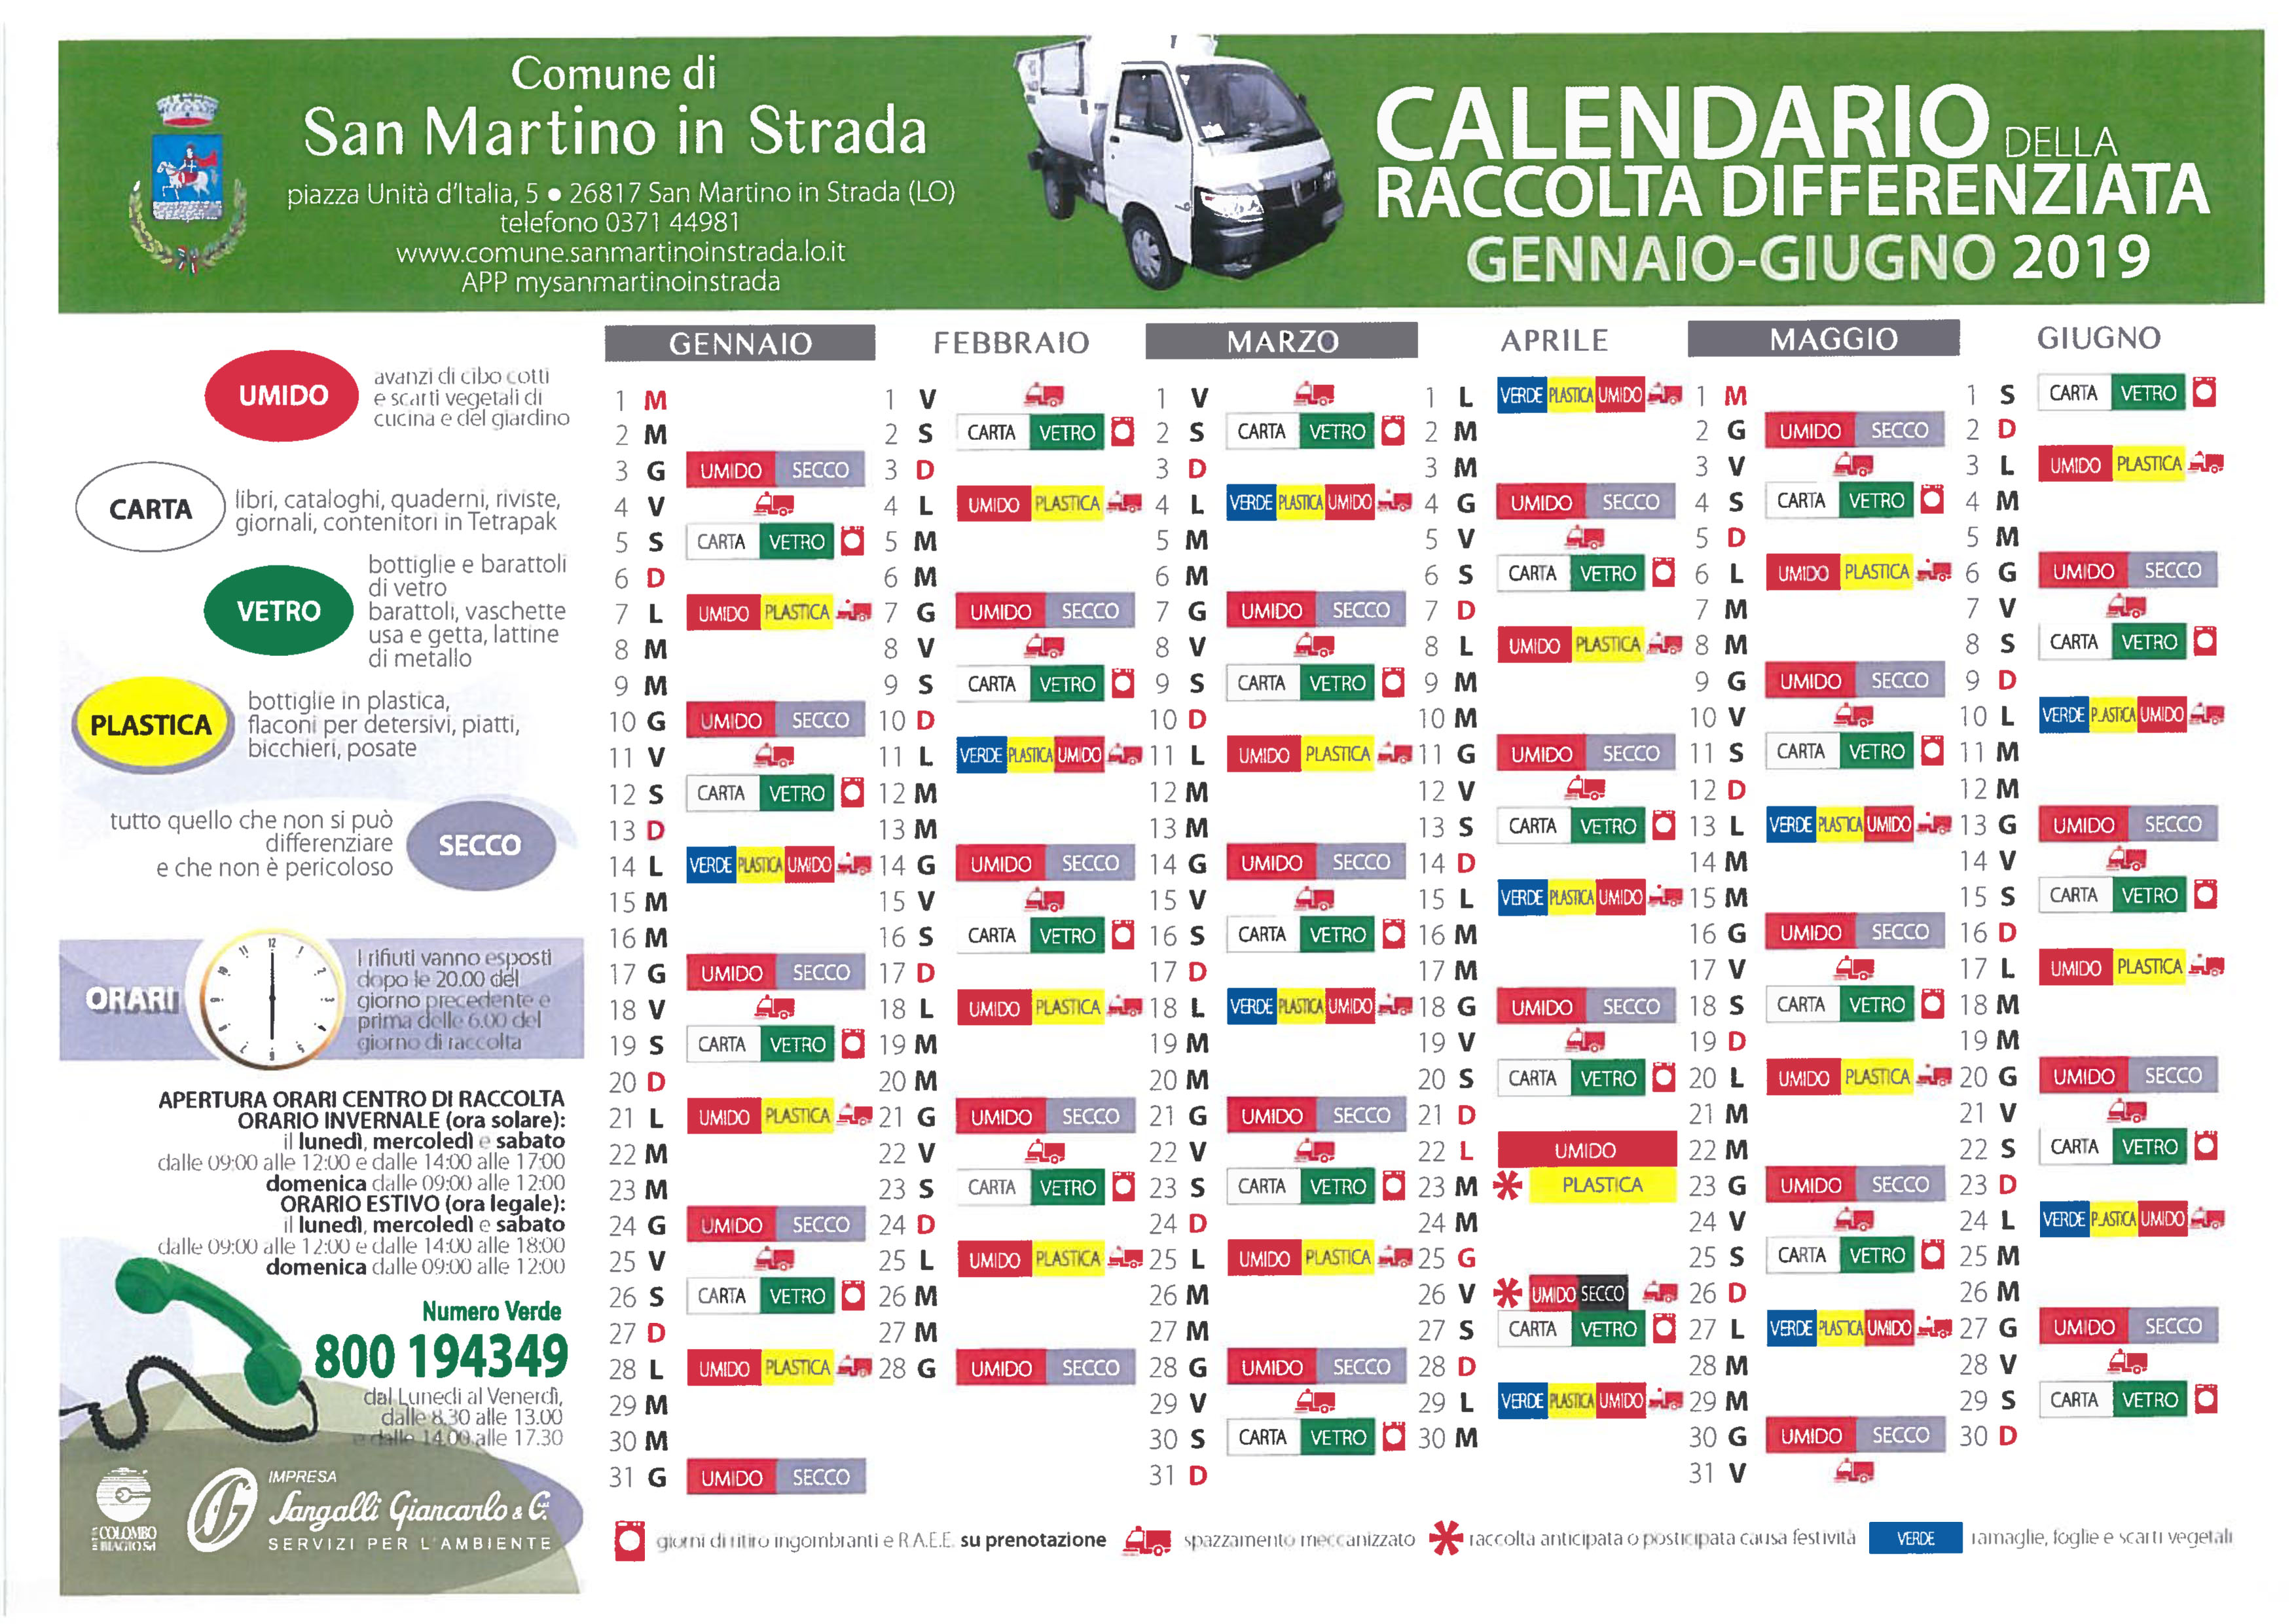 Calendario Differenziata.Grandi Novita Per La Raccolta Differenziata Dal 2019